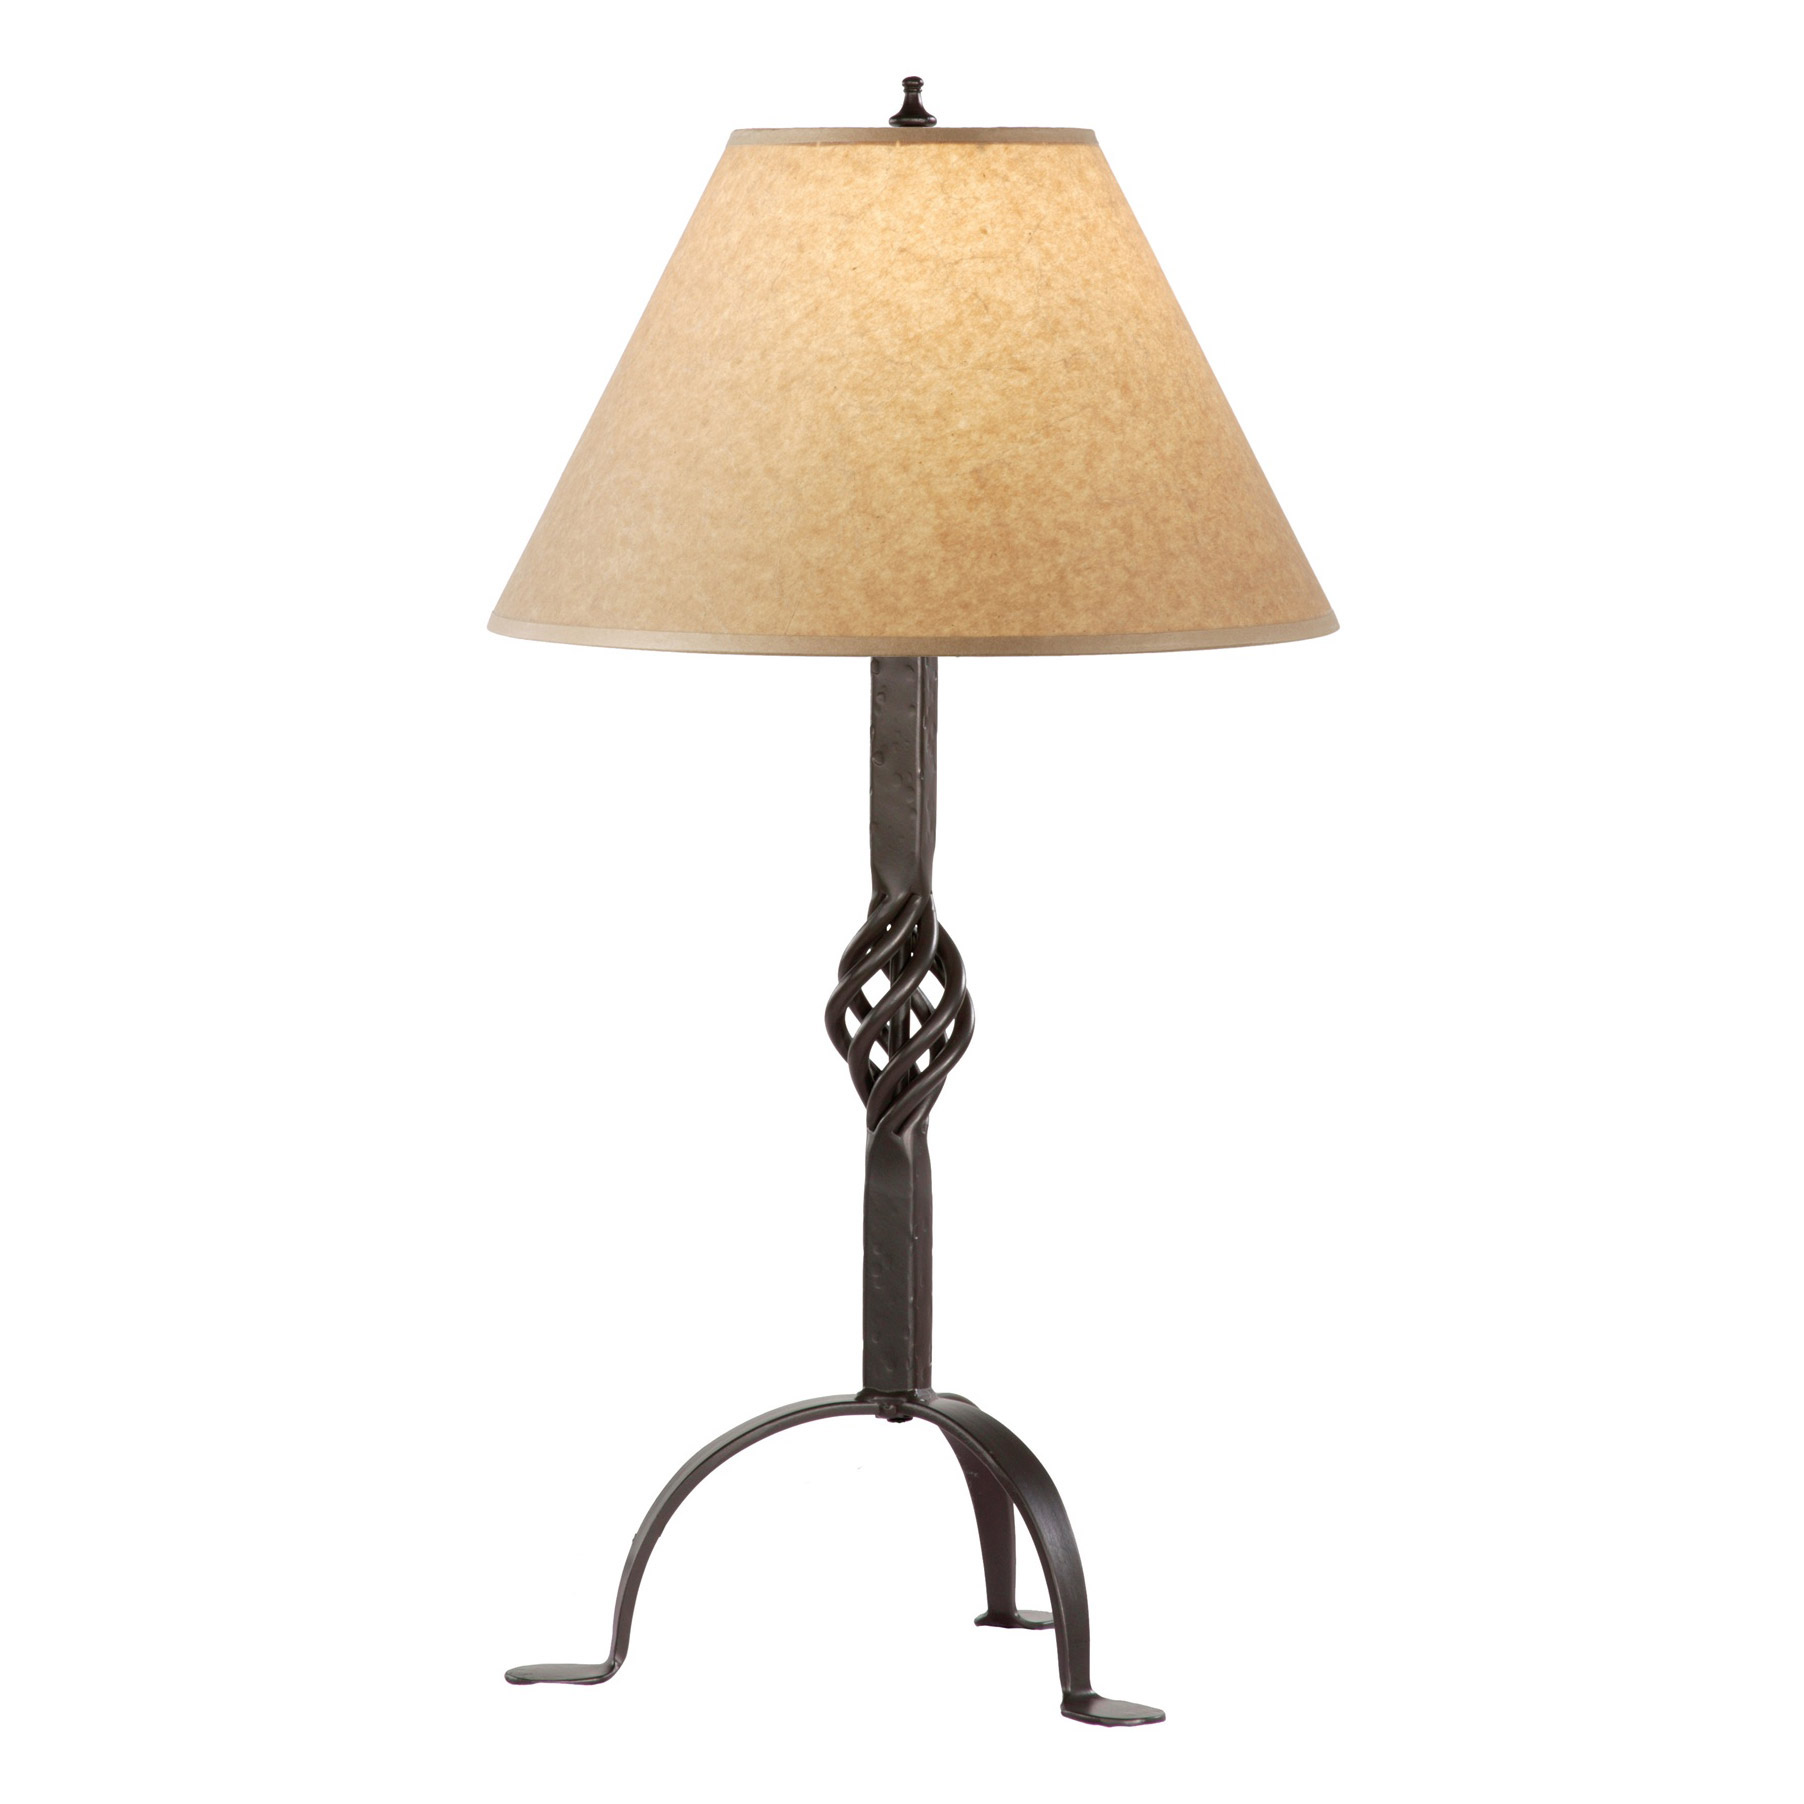 Wrought Iron Table Lamps 10 Methods To Add Amazing Class And Light 3 Way Switch Your Home Decor Warisan Lighting